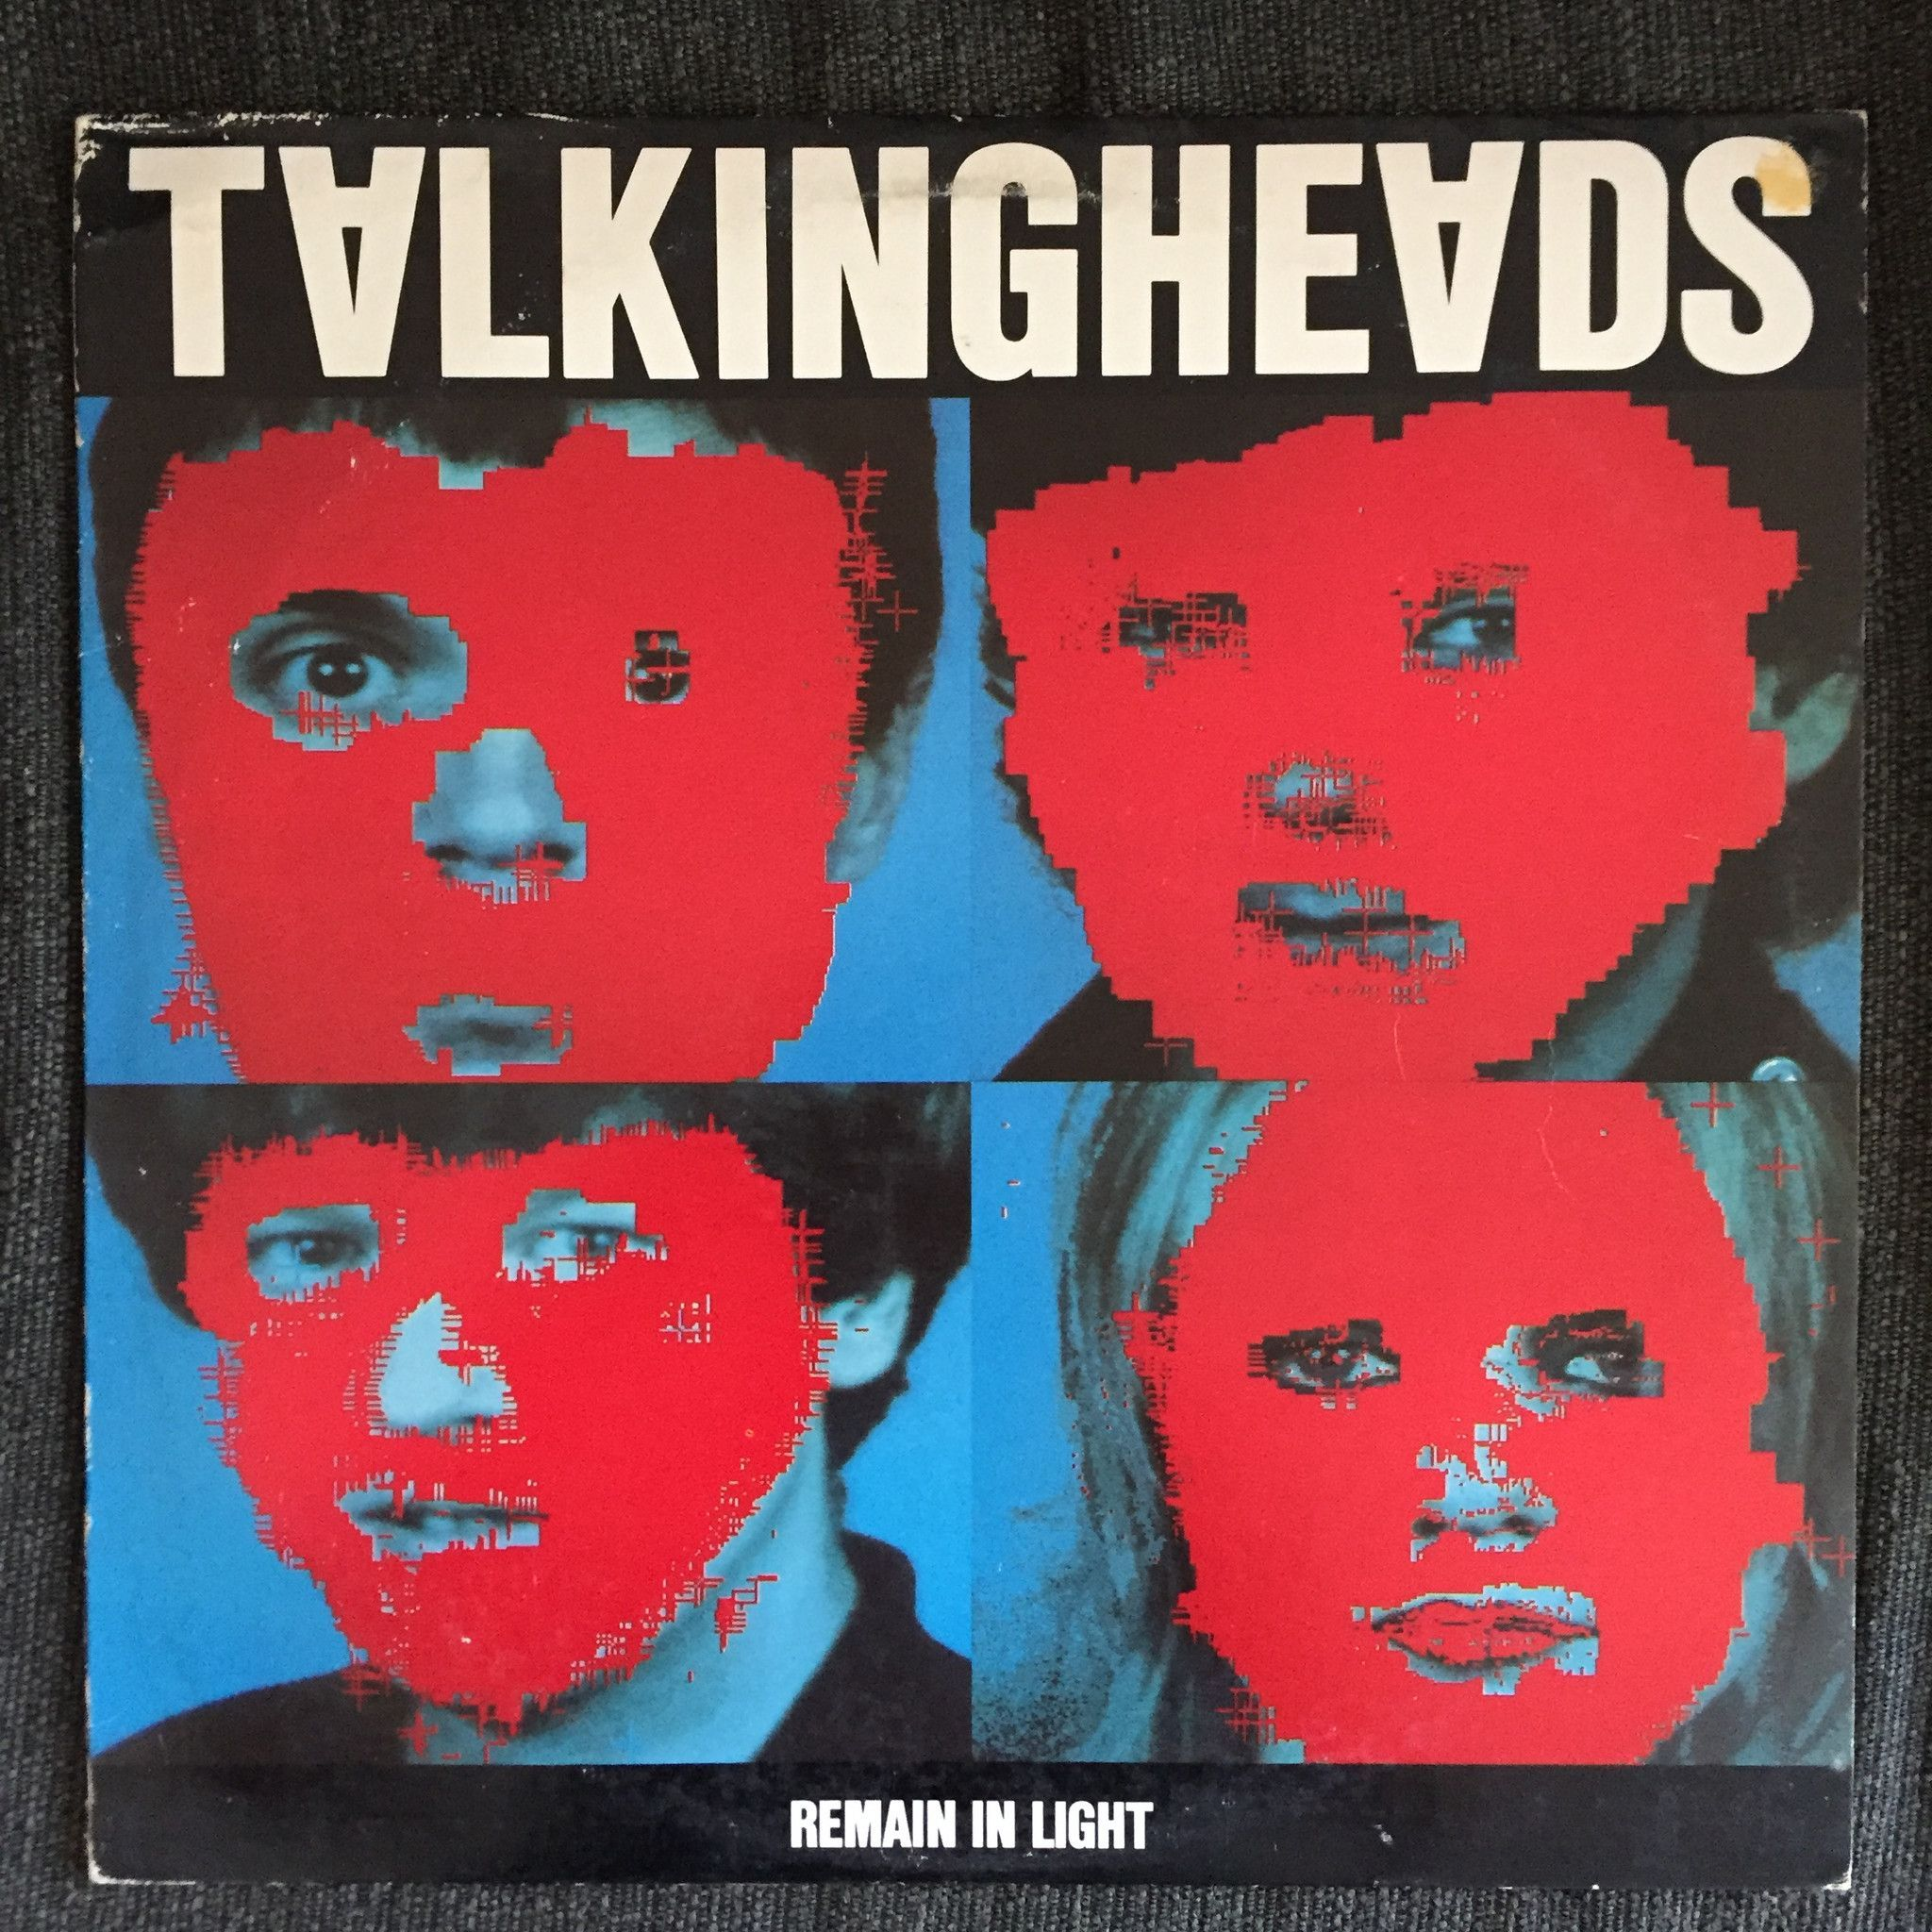 Talking Heads Remain In Light Used Lp Remain In Light Album Covers Album Cover Art